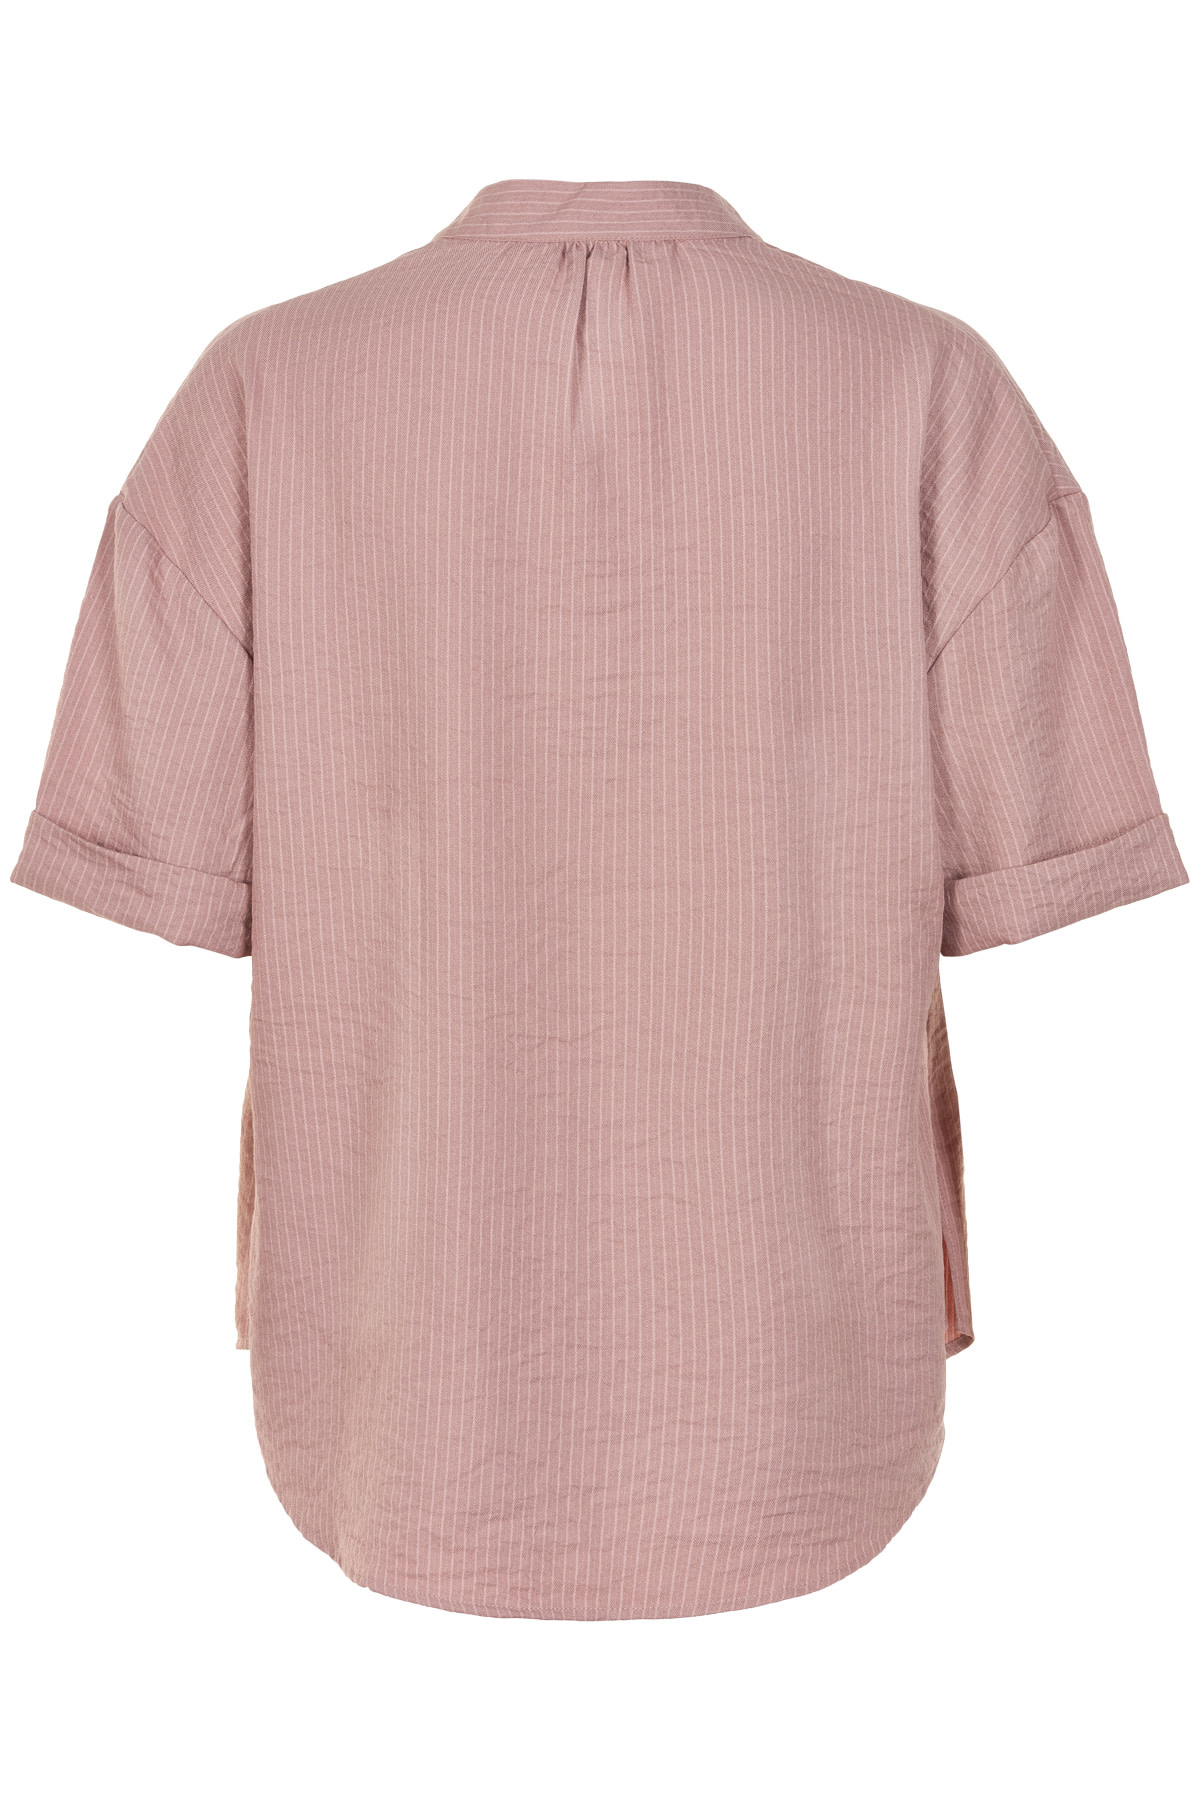 AndLess Oribella Blouse - Rose